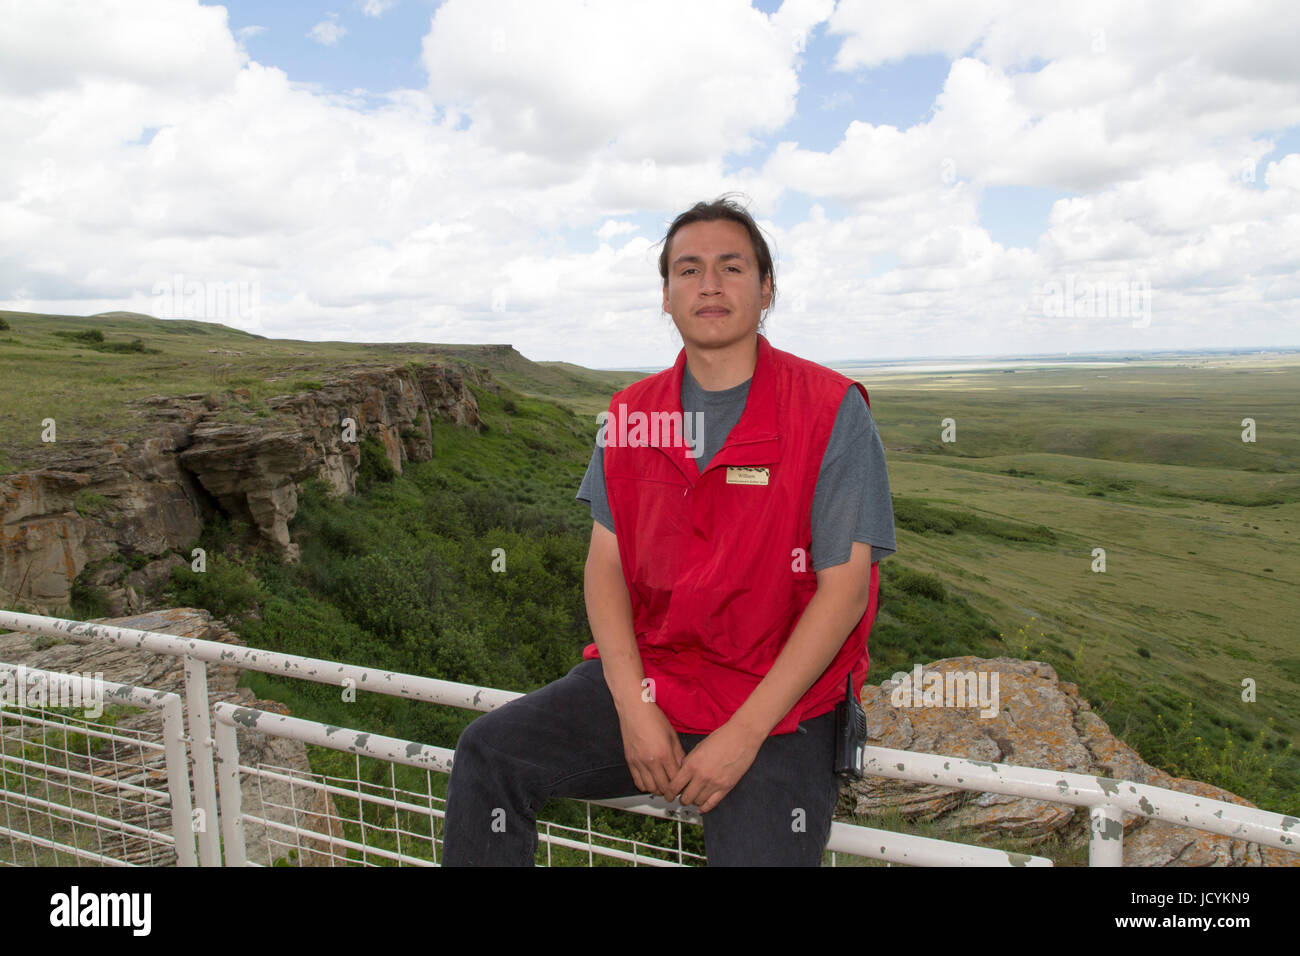 William, an interpretive guide at Head-Smashed-In Buffalo Jump in Alberta,  Canada, The First Nations' hunting ground was used for 6,000 years and is t